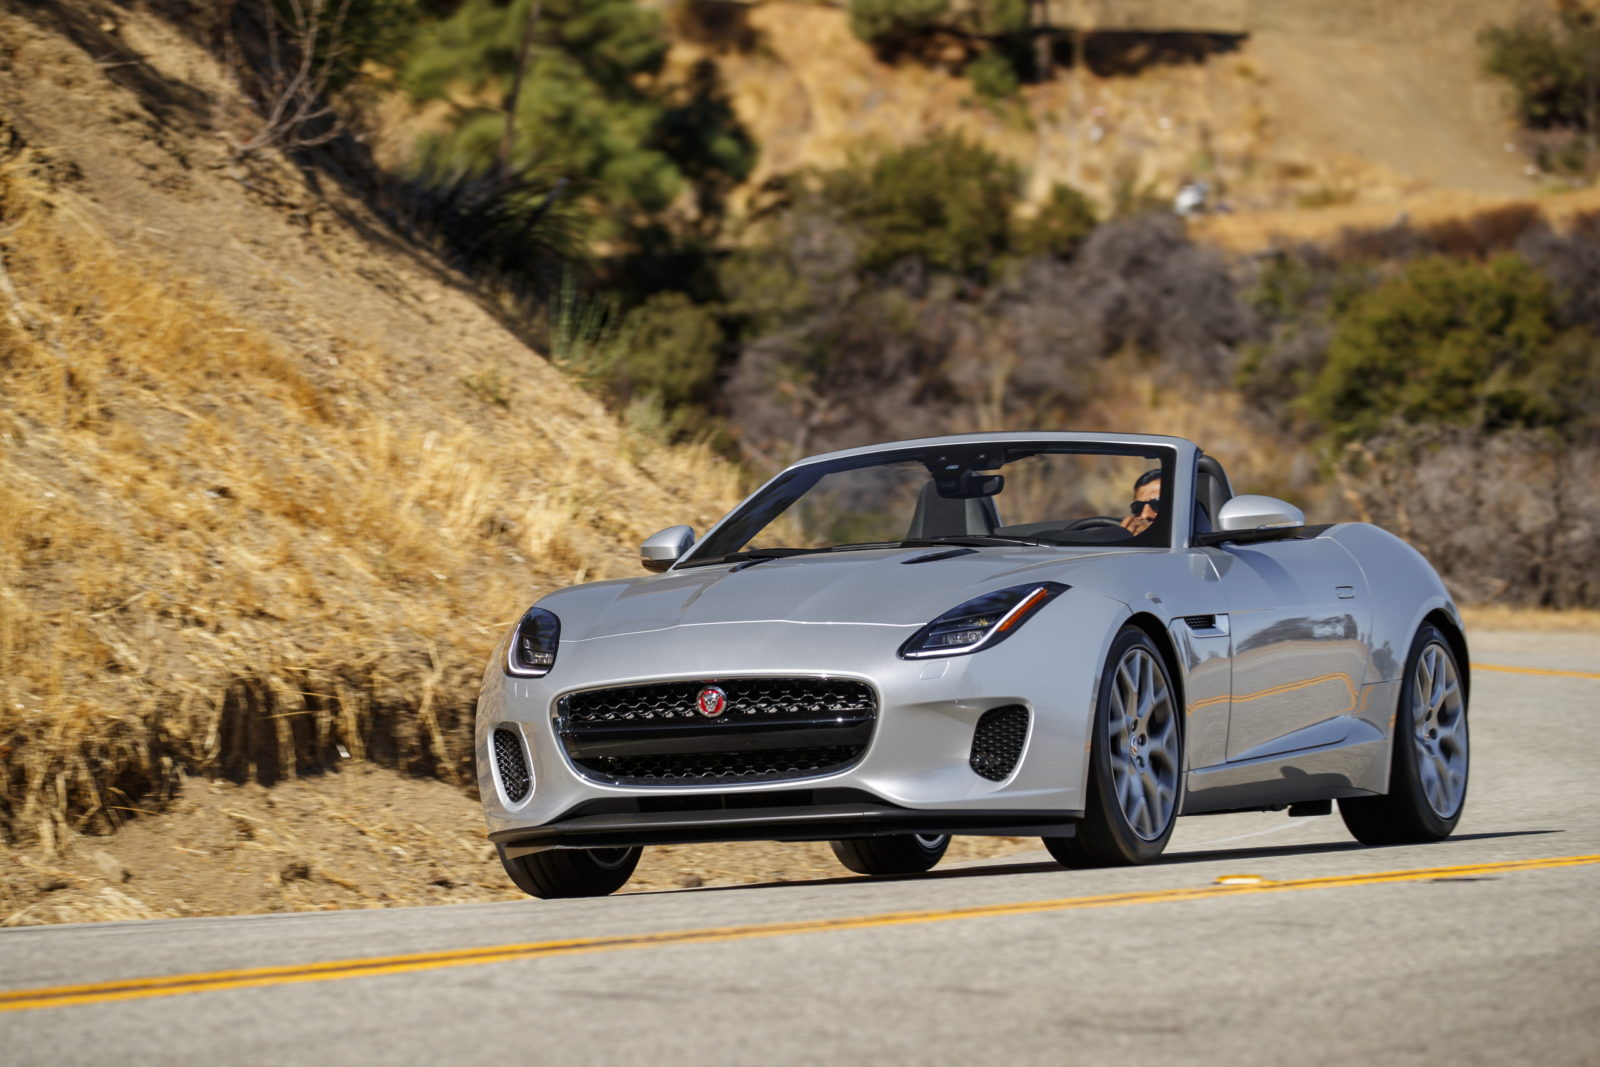 jaguar-recalls-one-f-type-in-the-us-for-airbag-issues,-is-it-yours?